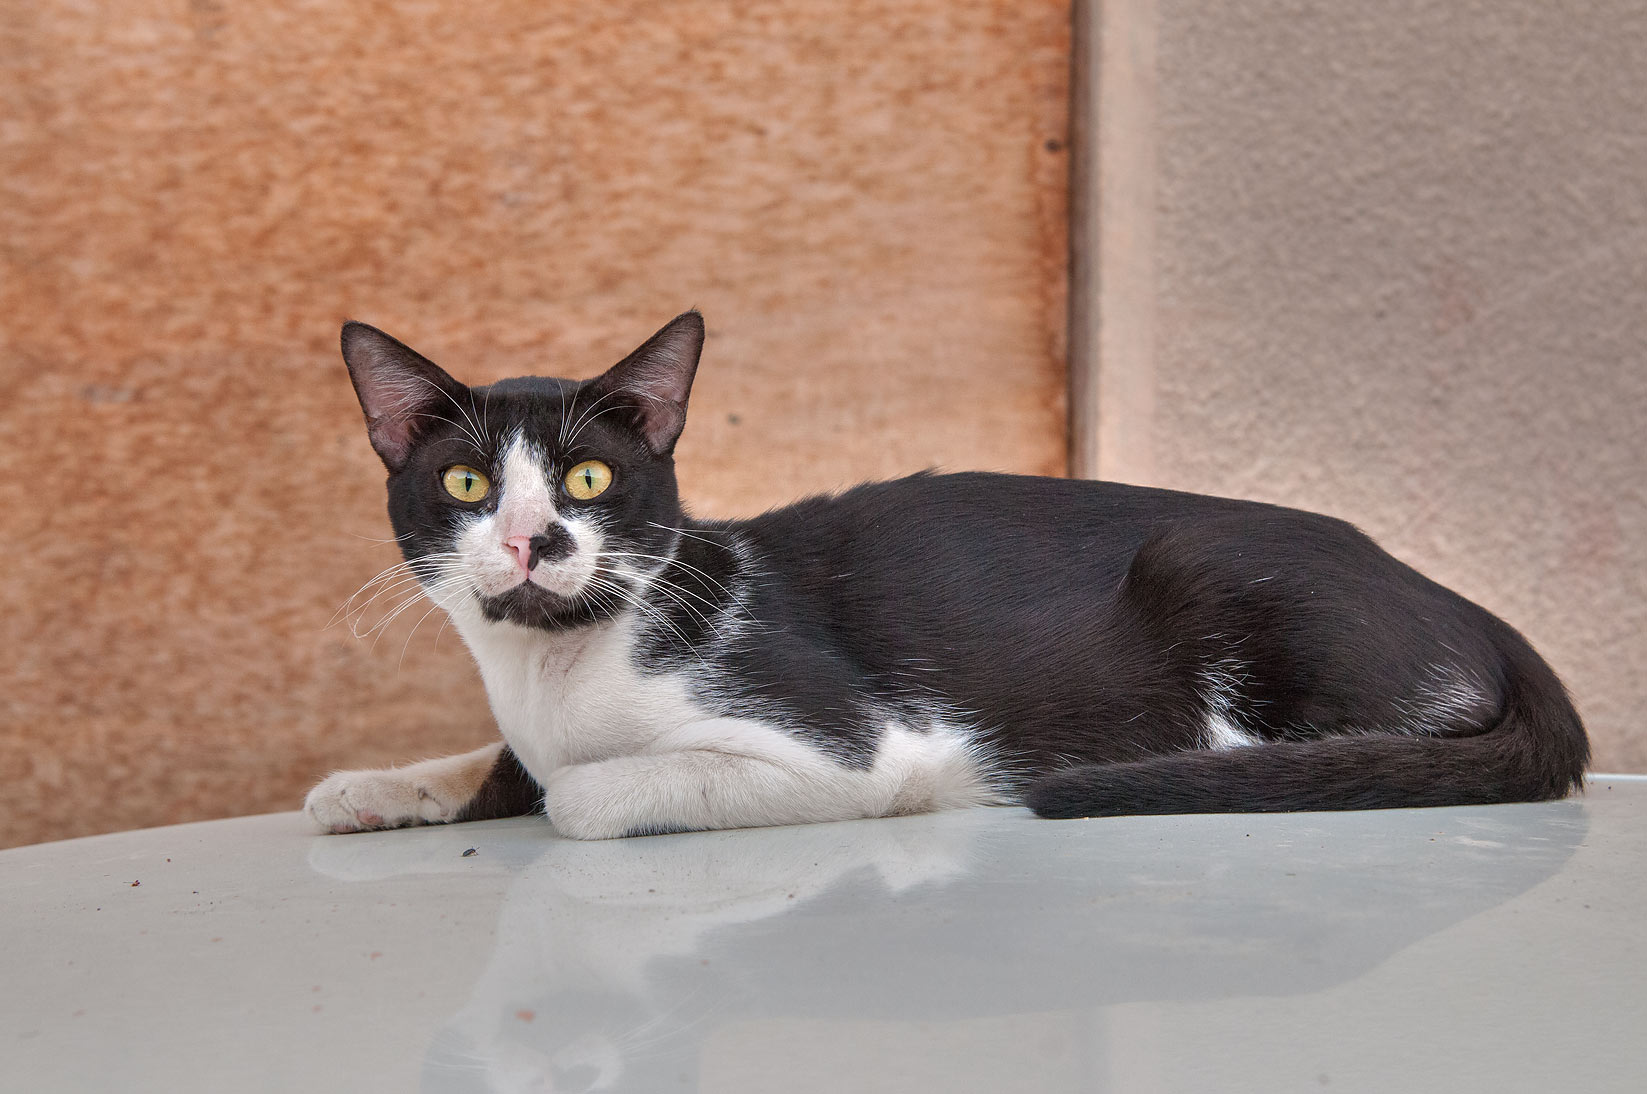 Tuxedo cat resting on a car at Ibn Al Samit near...St., Musheirib area. Doha, Qatar